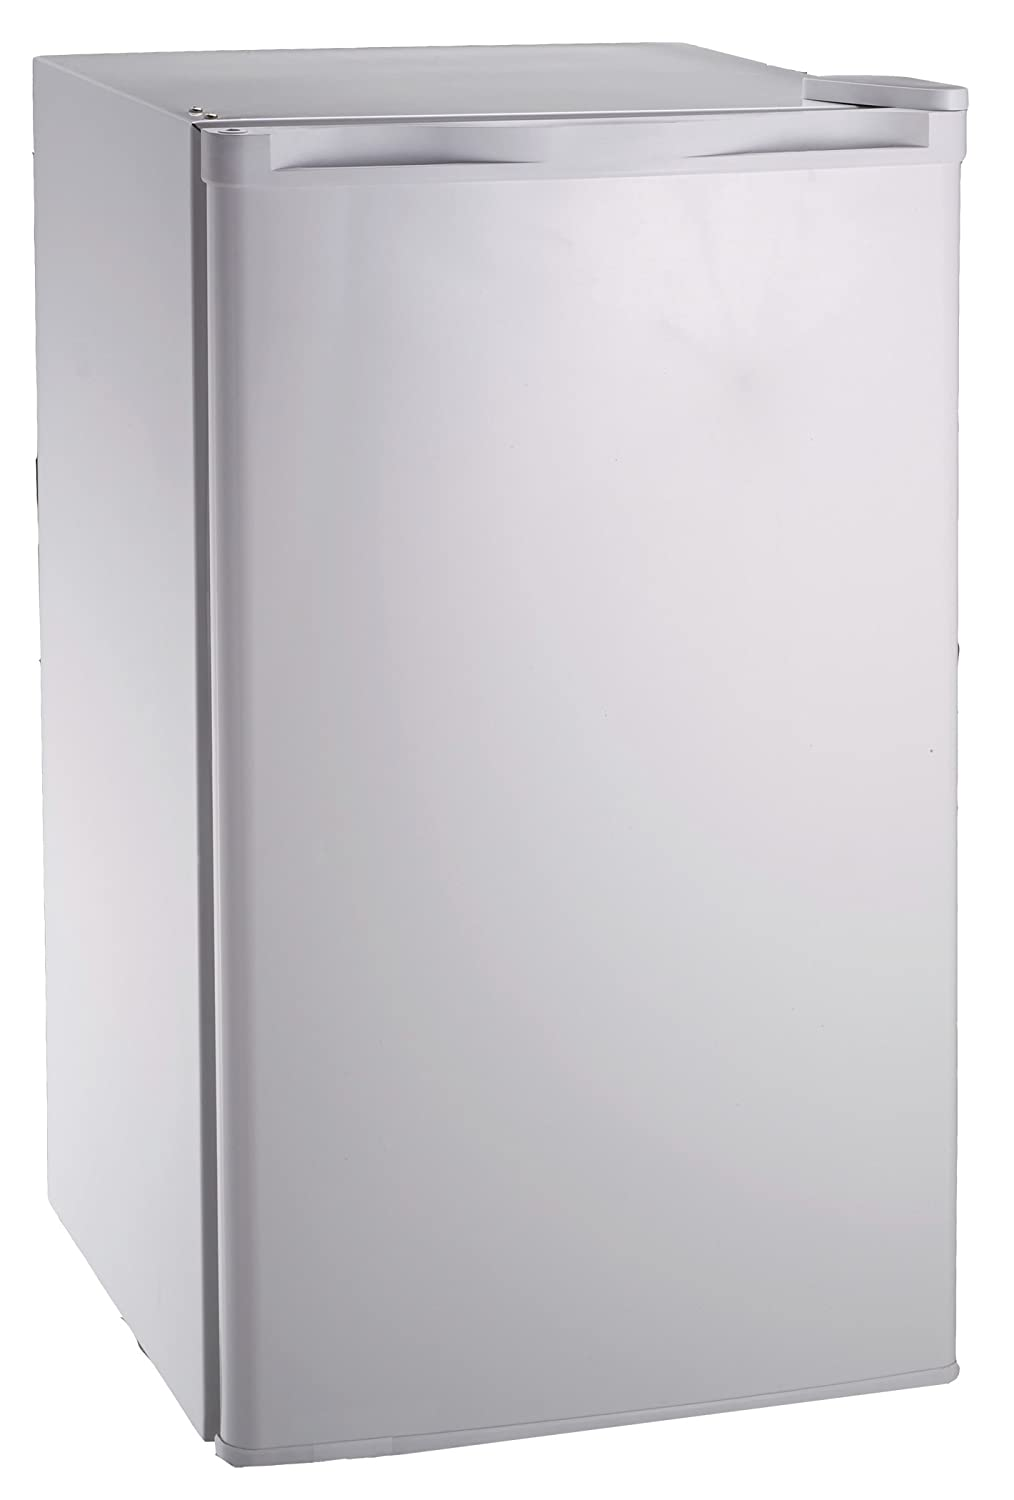 RCA RFR321-FR320/8 IGLOO Mini Refrigerator, 3.2 Cu Ft Fridge, White